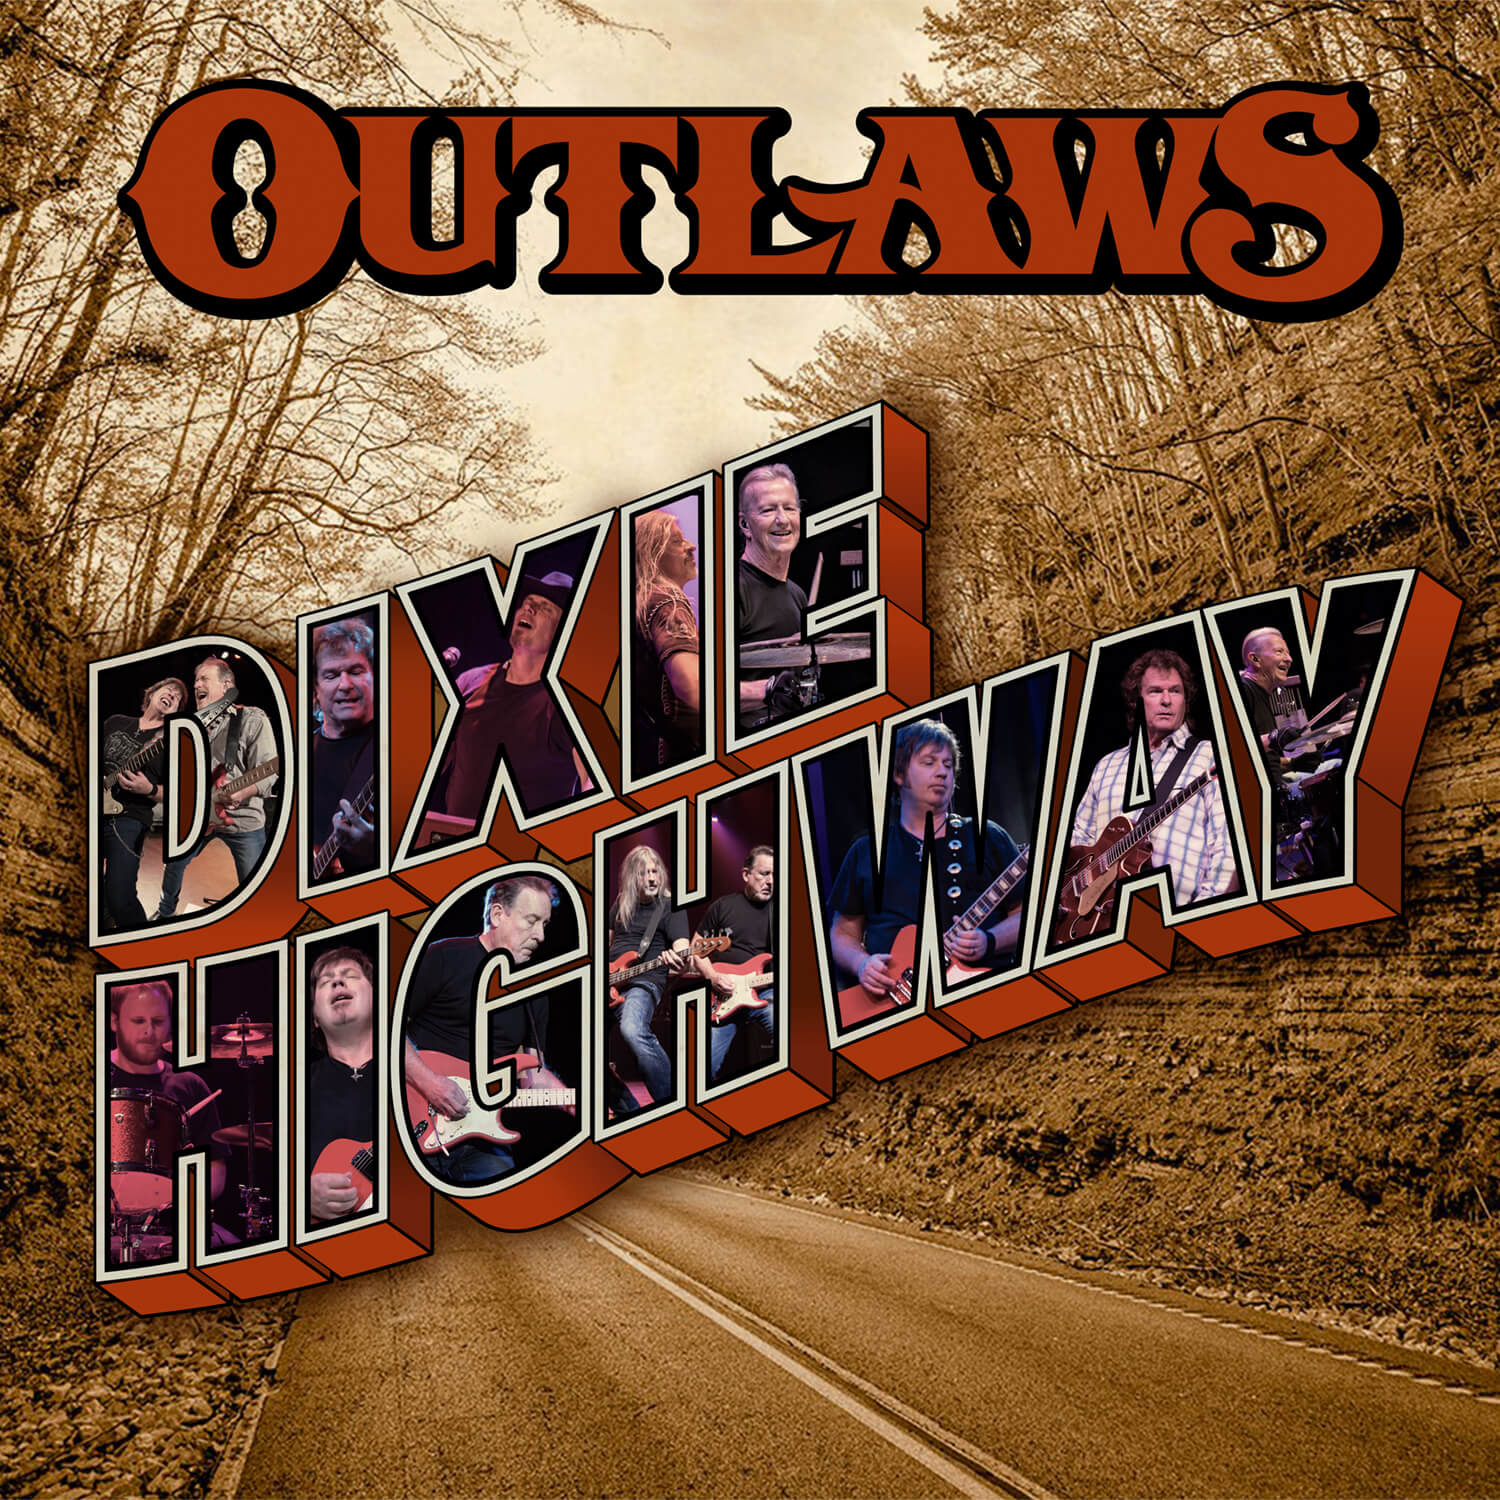 New album Dixie Highway out on 28 February 2020